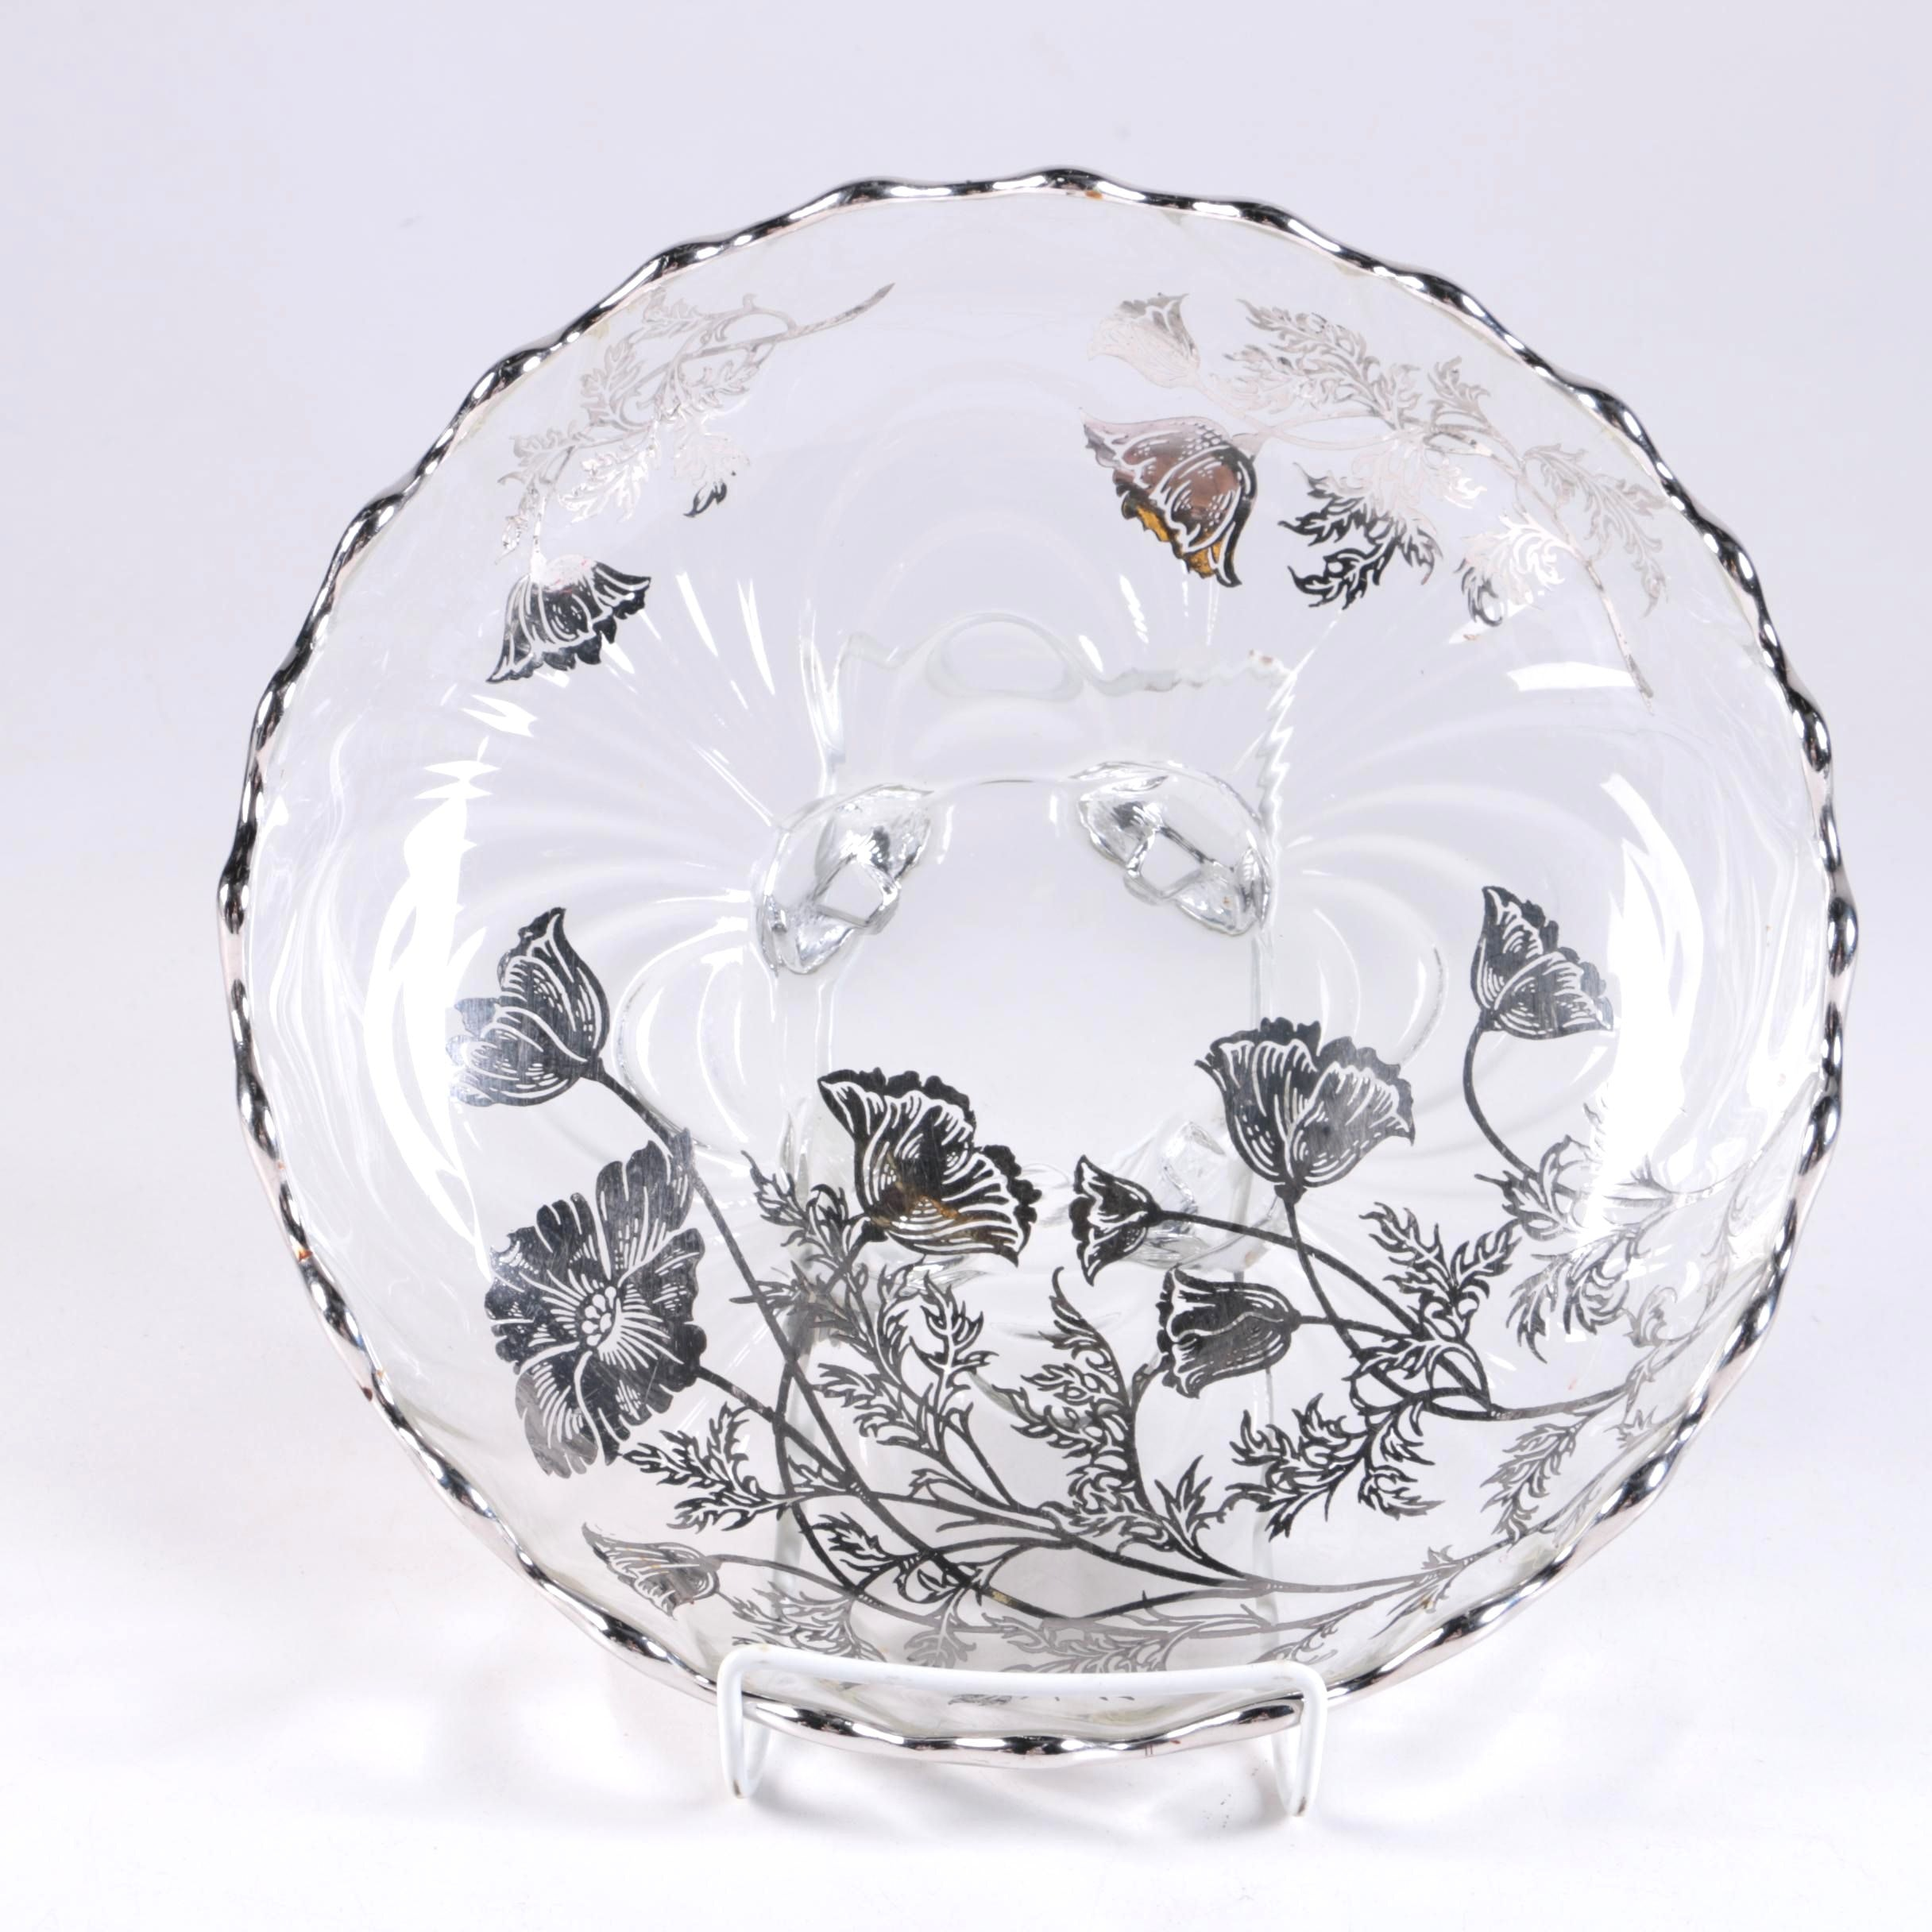 Glass Bowl With Silver Toned Floral Overlay